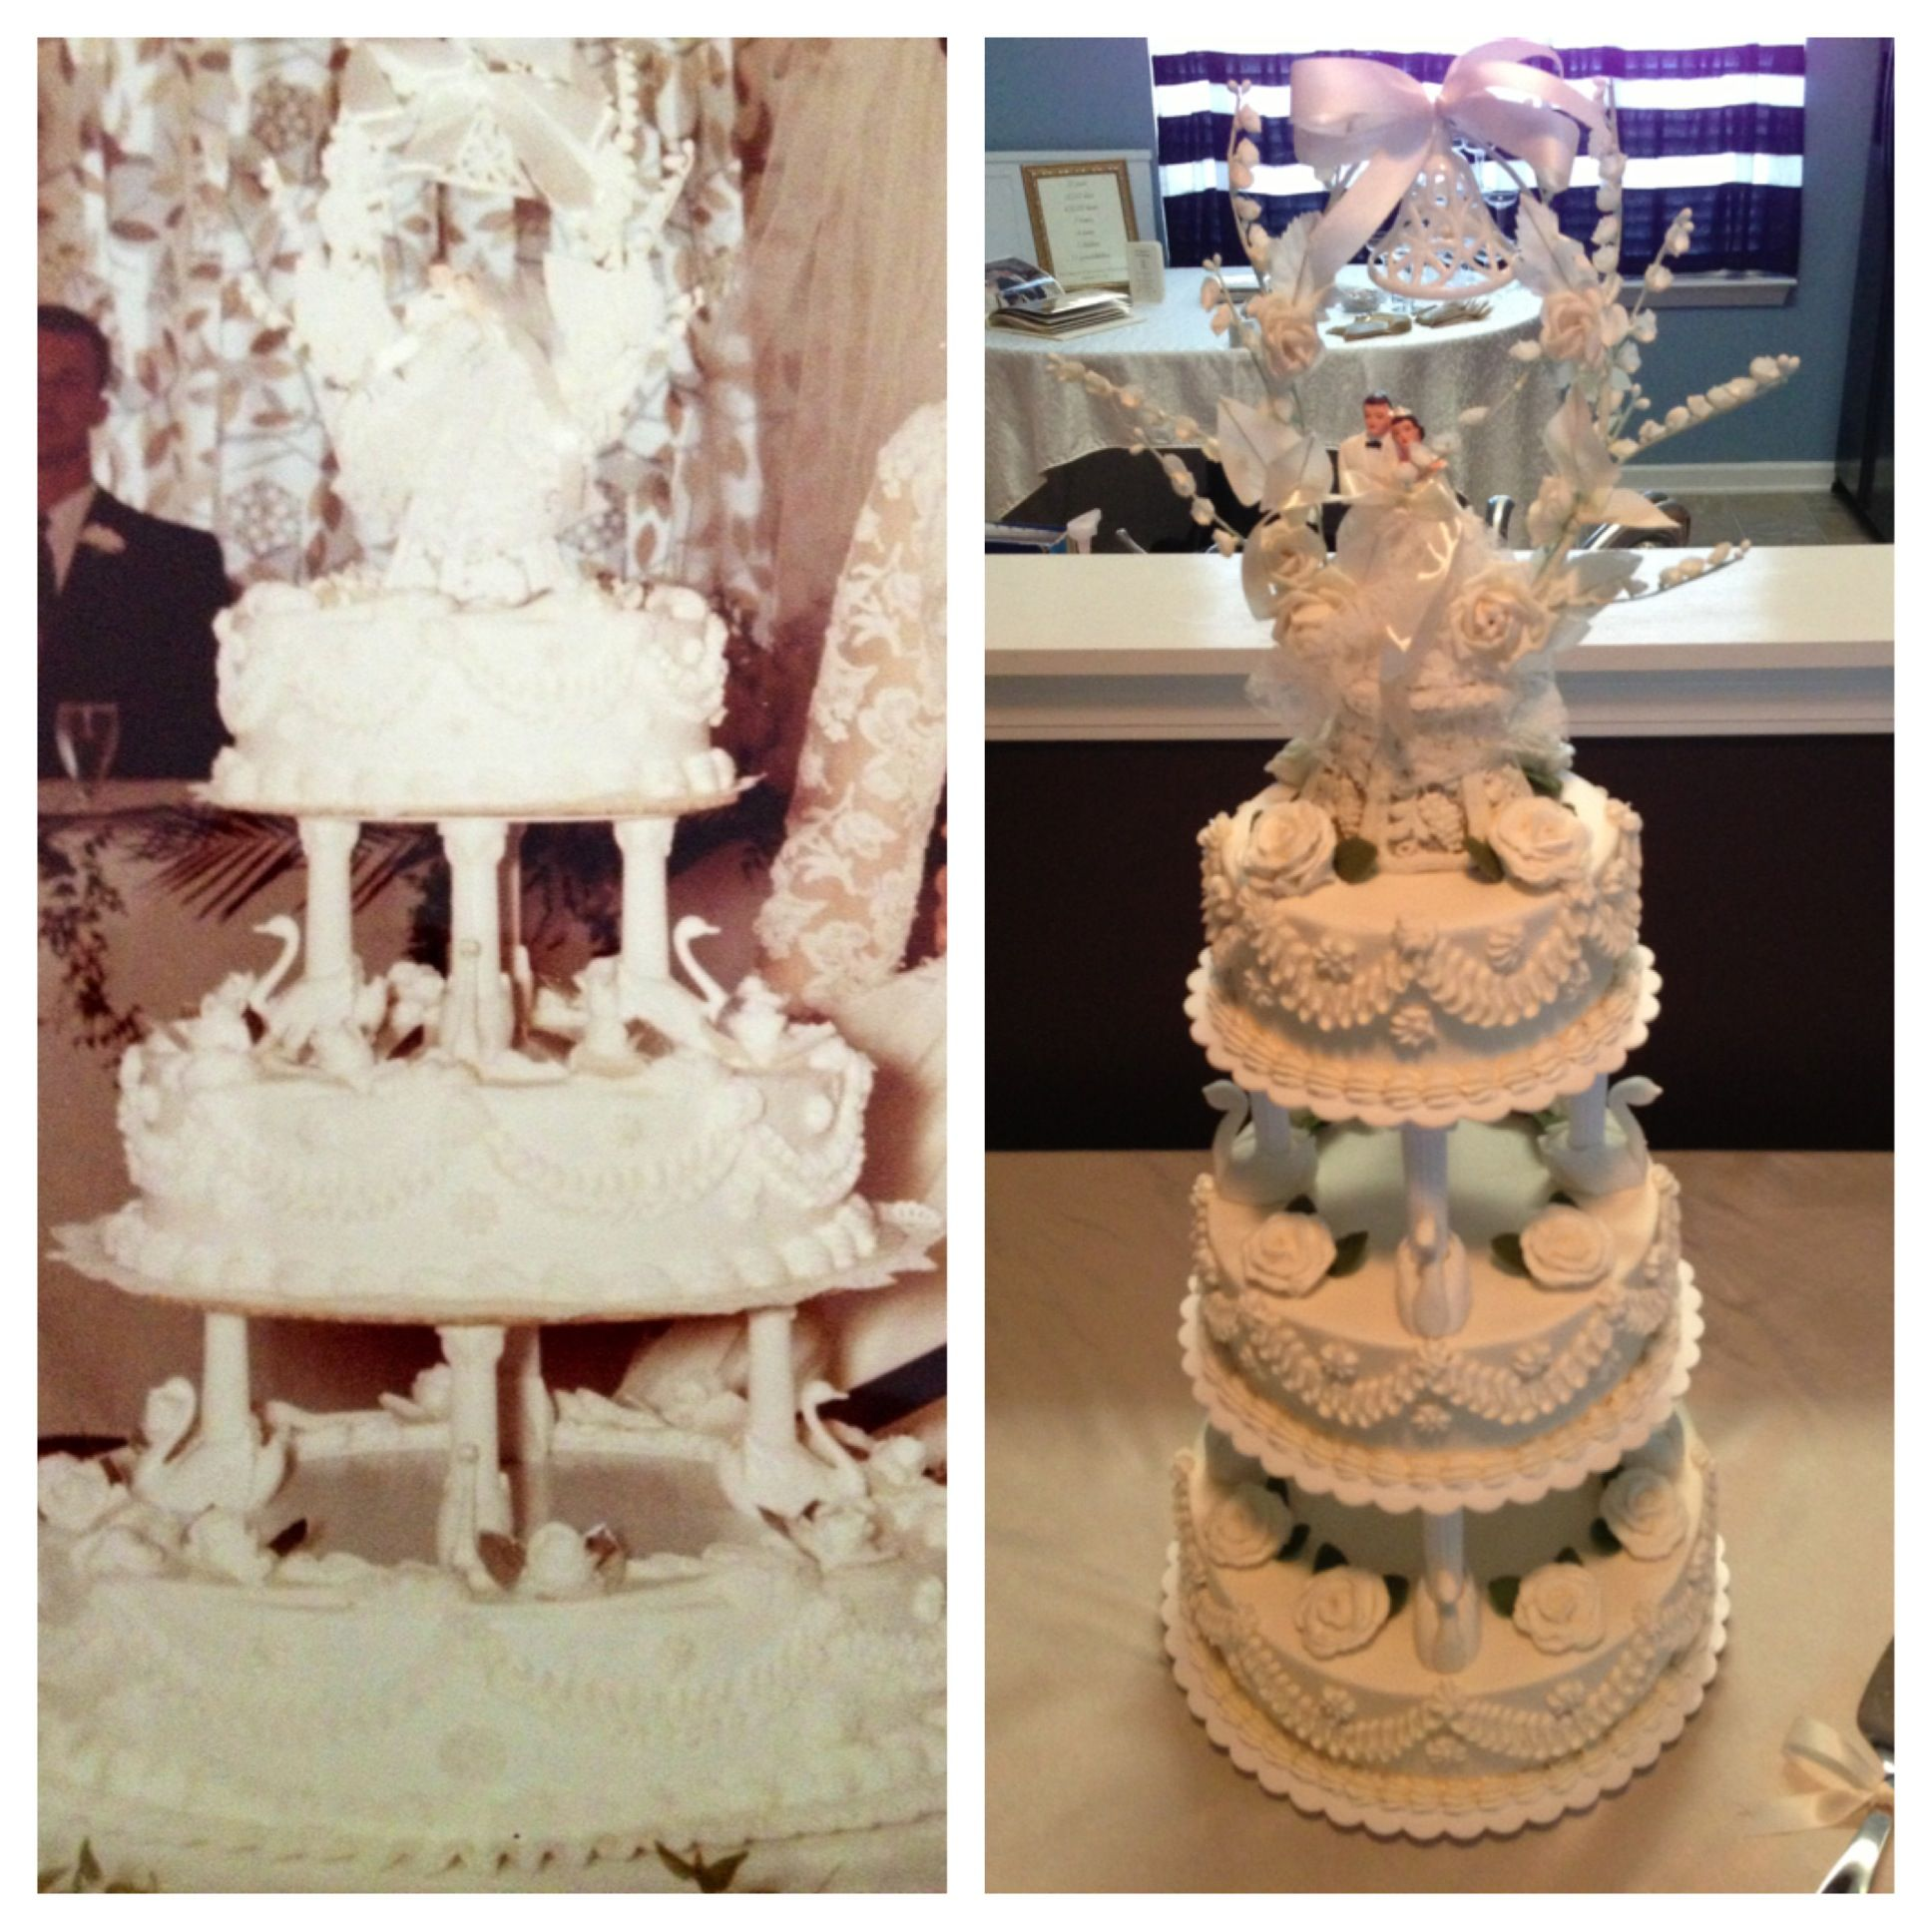 Wedding Cake Recipe Custom History: My Attempt At Replicating A Wedding Cake For A Golden